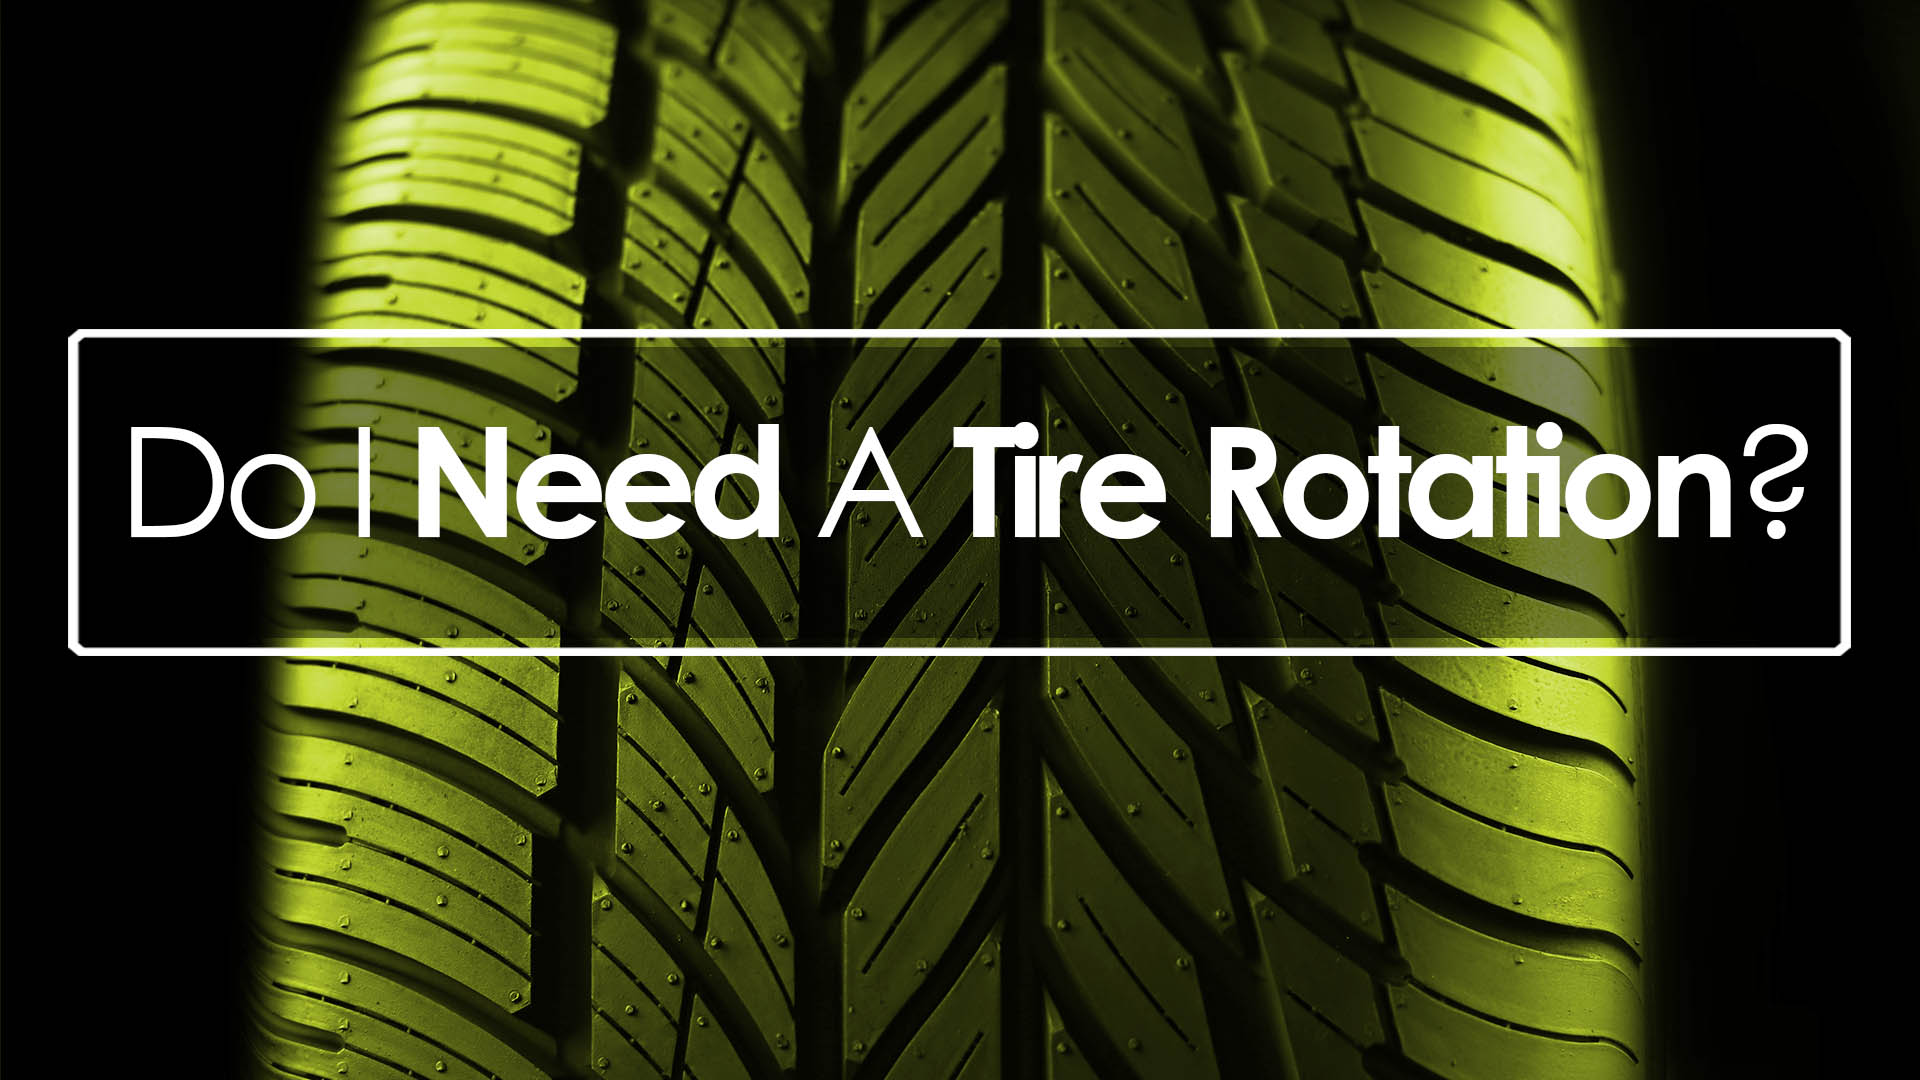 Do I need a Tire Rotation